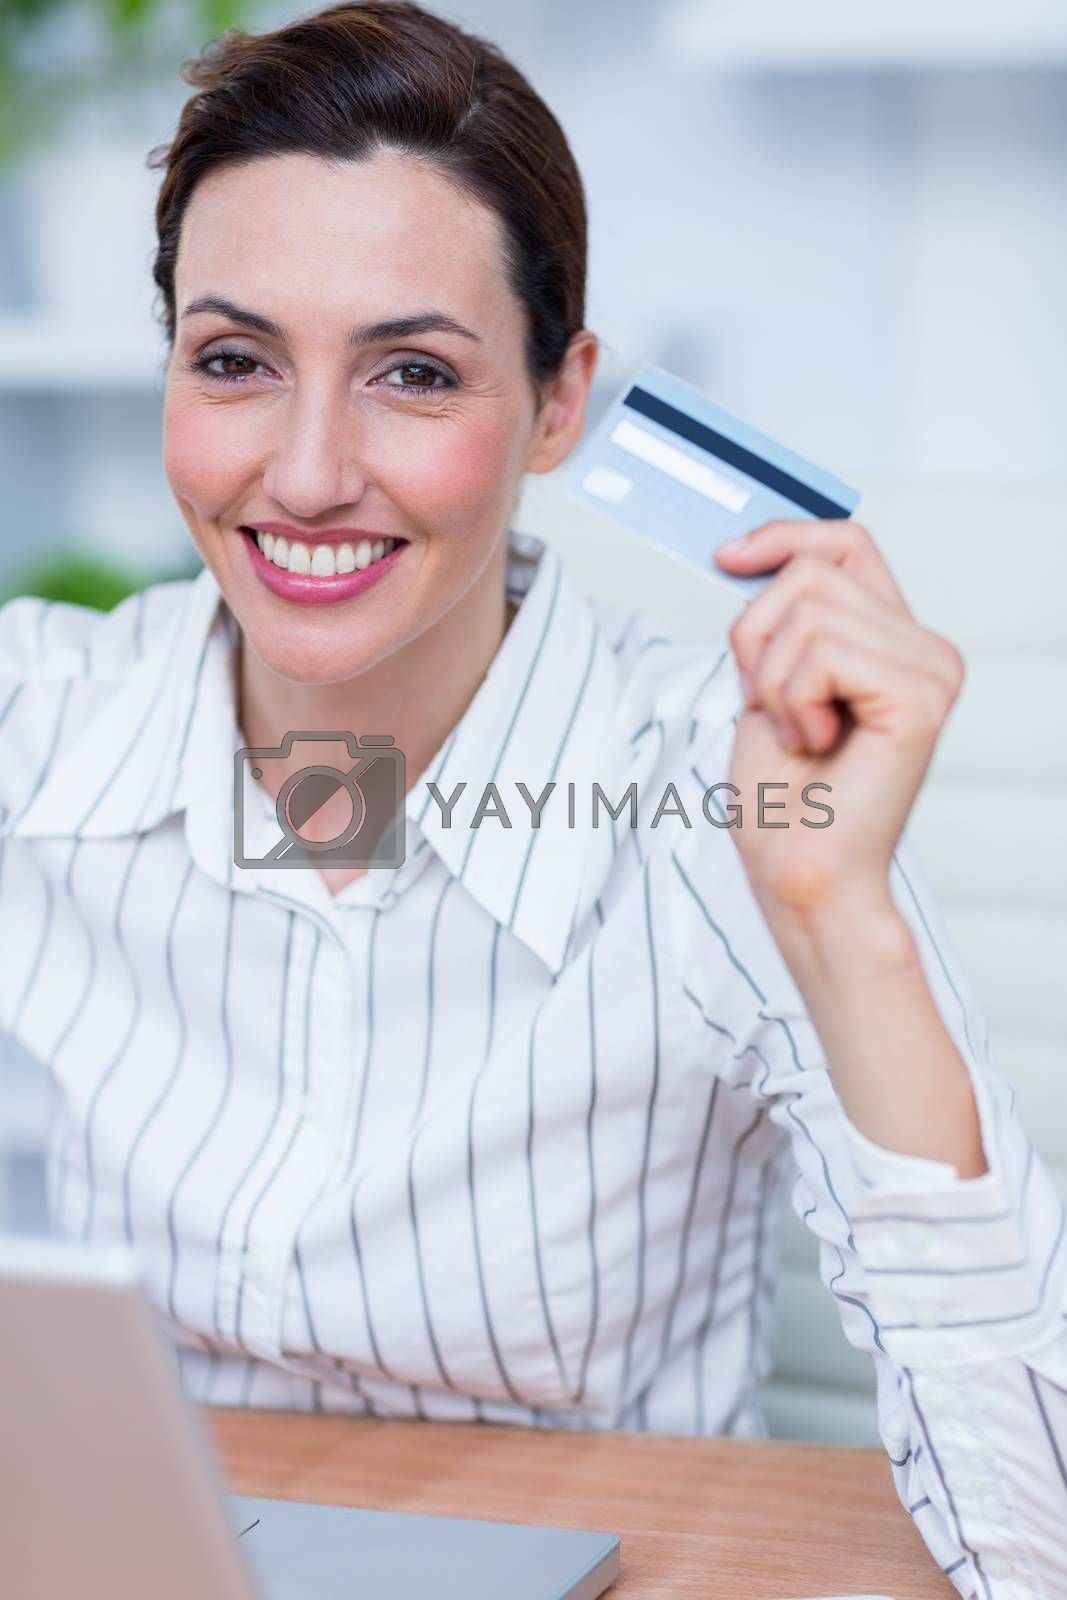 Royalty free image of Pretty brunette businesswoman using her credit card  by Wavebreakmedia